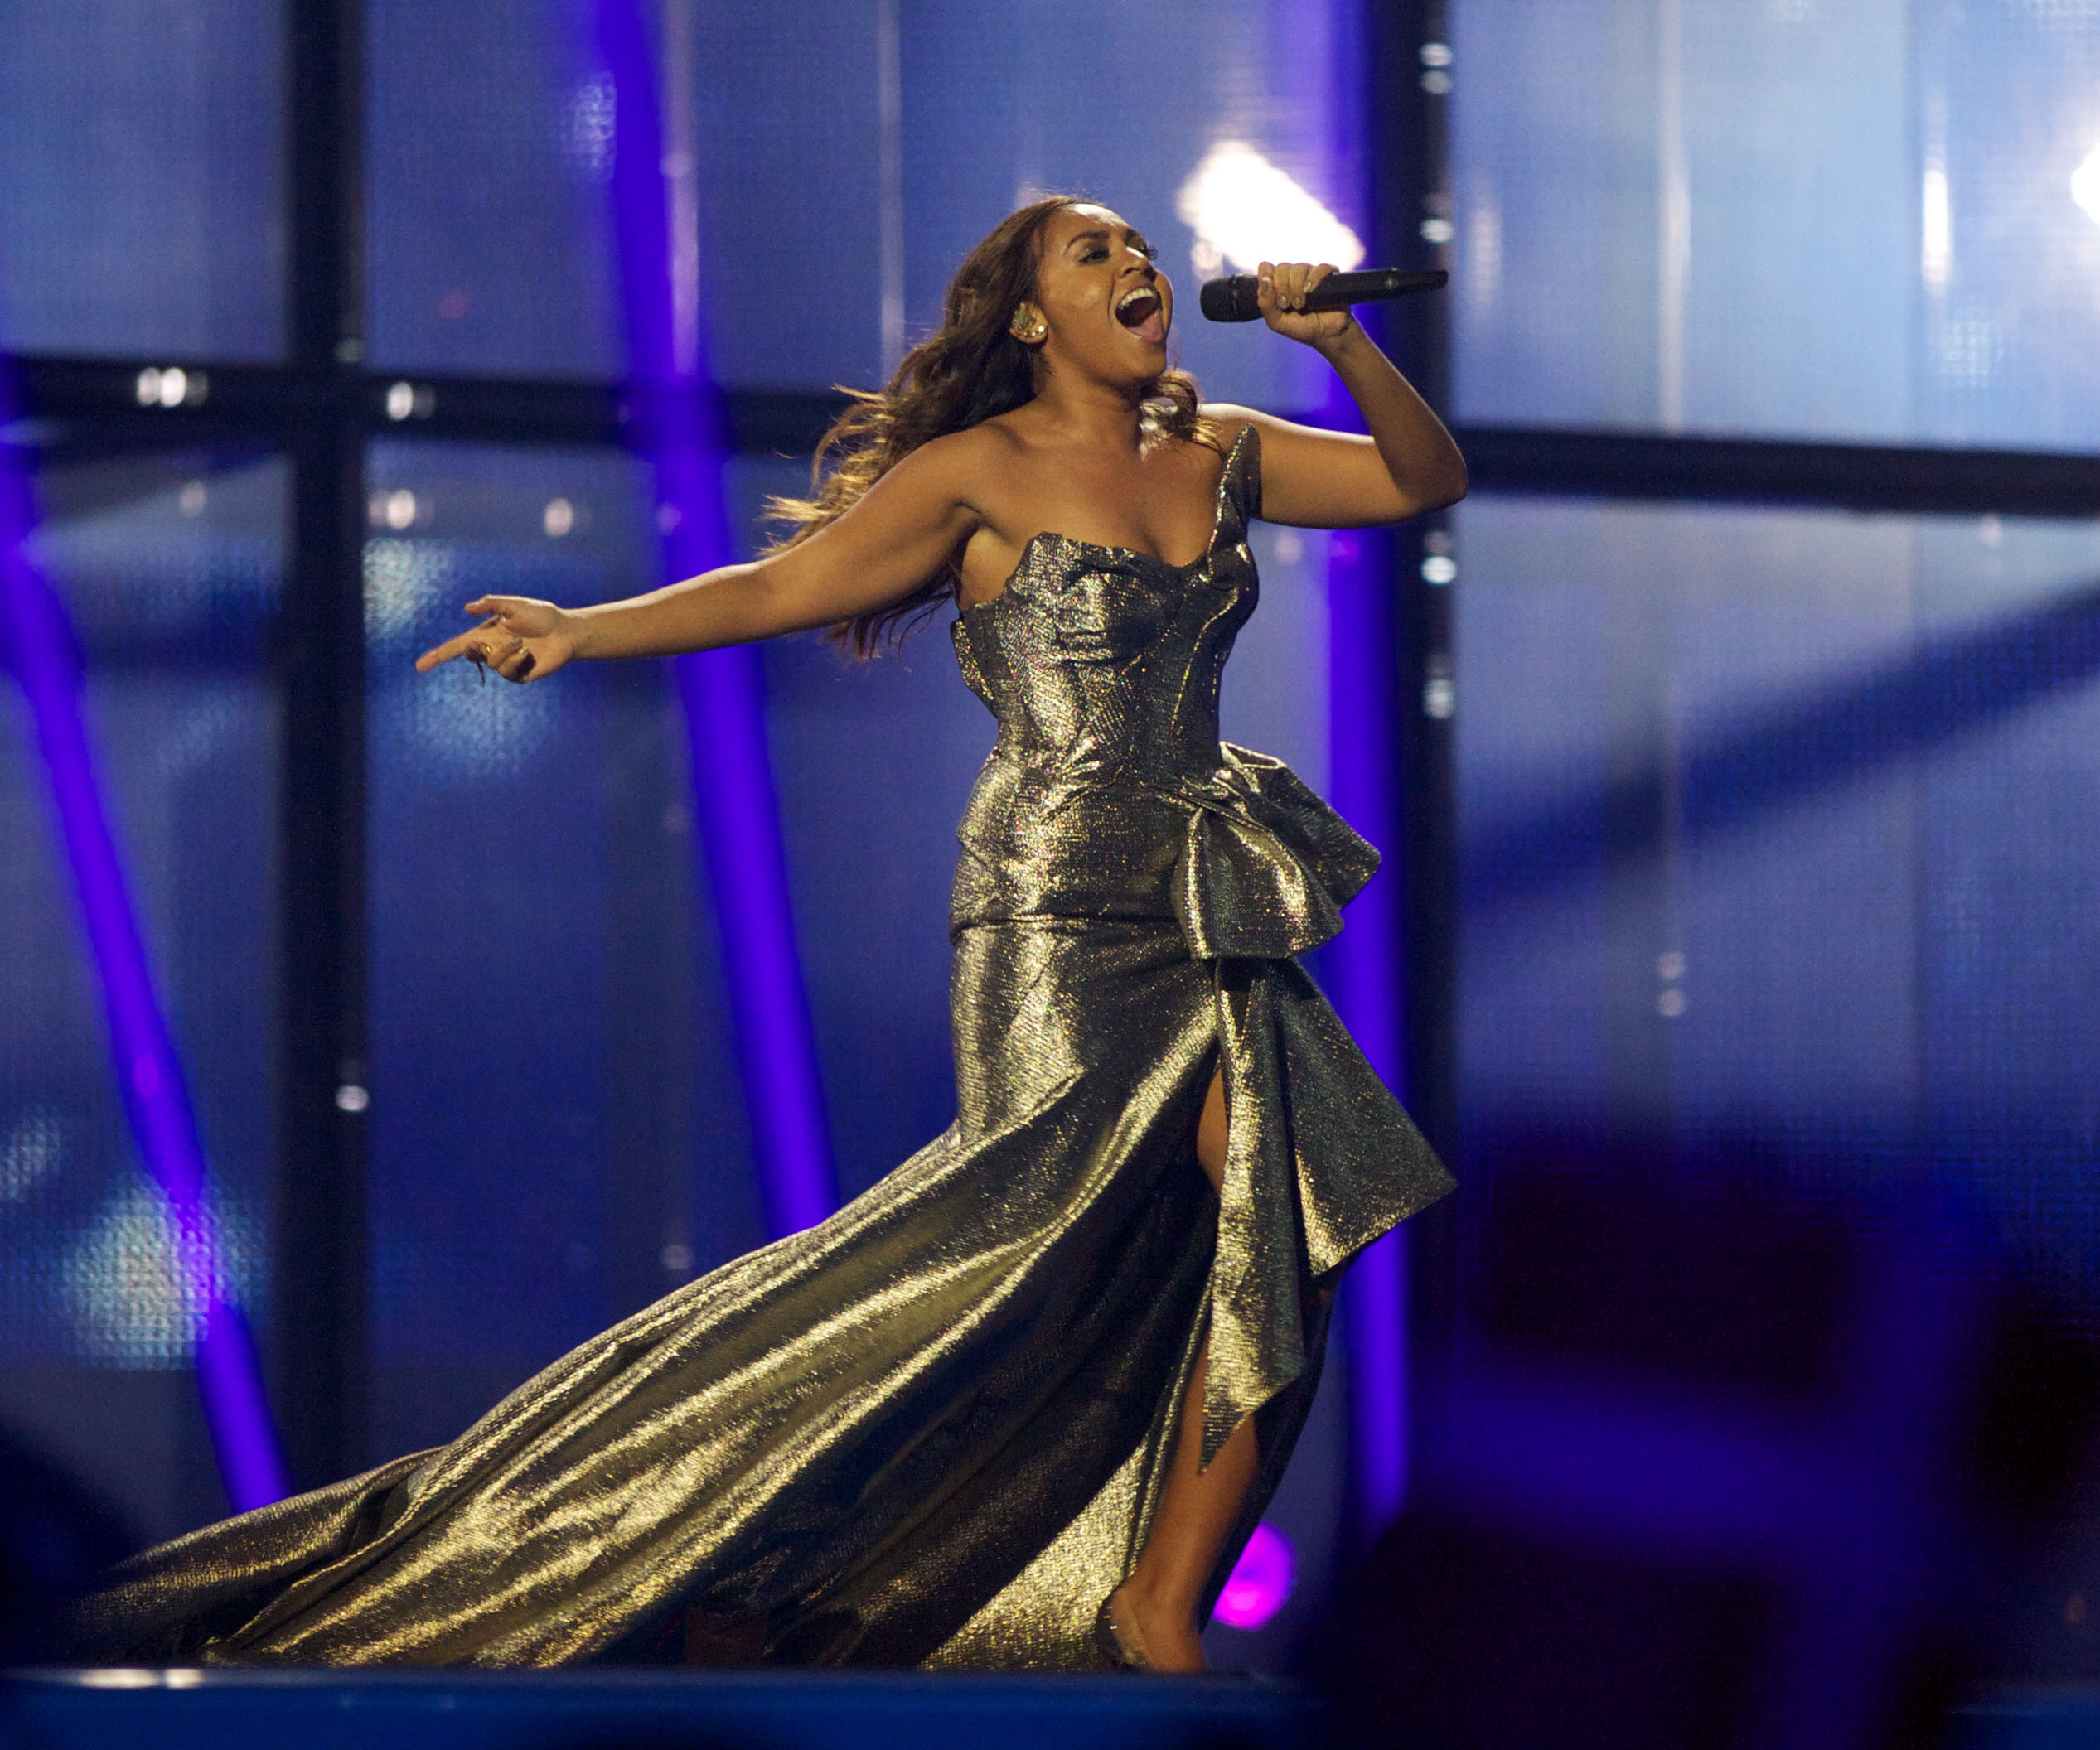 Jessica Mauboy Will Represent Australia In The Eurovision Song Contest In 2018!